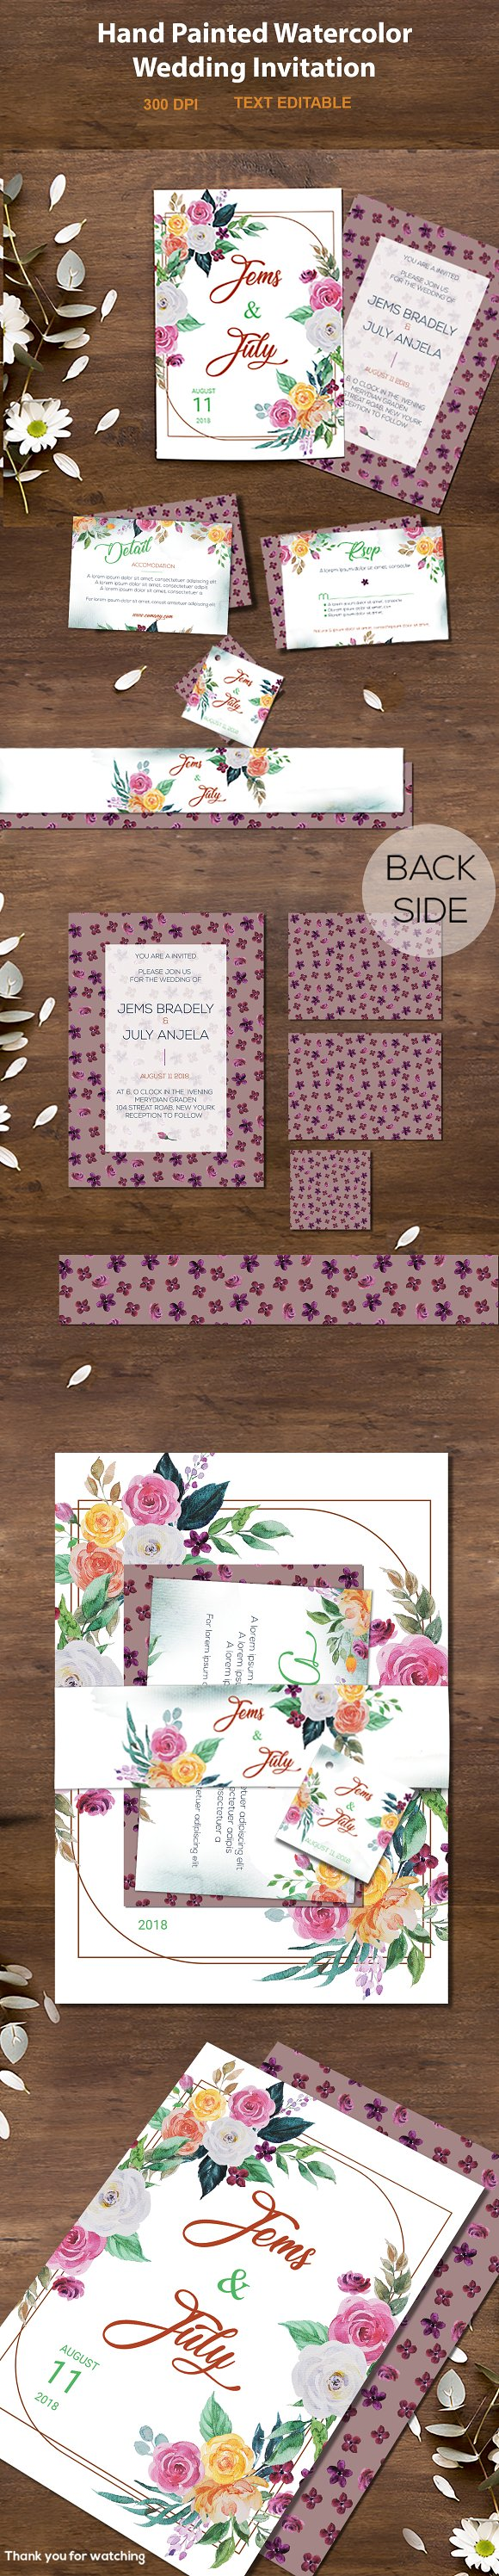 Wedding Watercolor Invitation card  in Illustrations - product preview 4